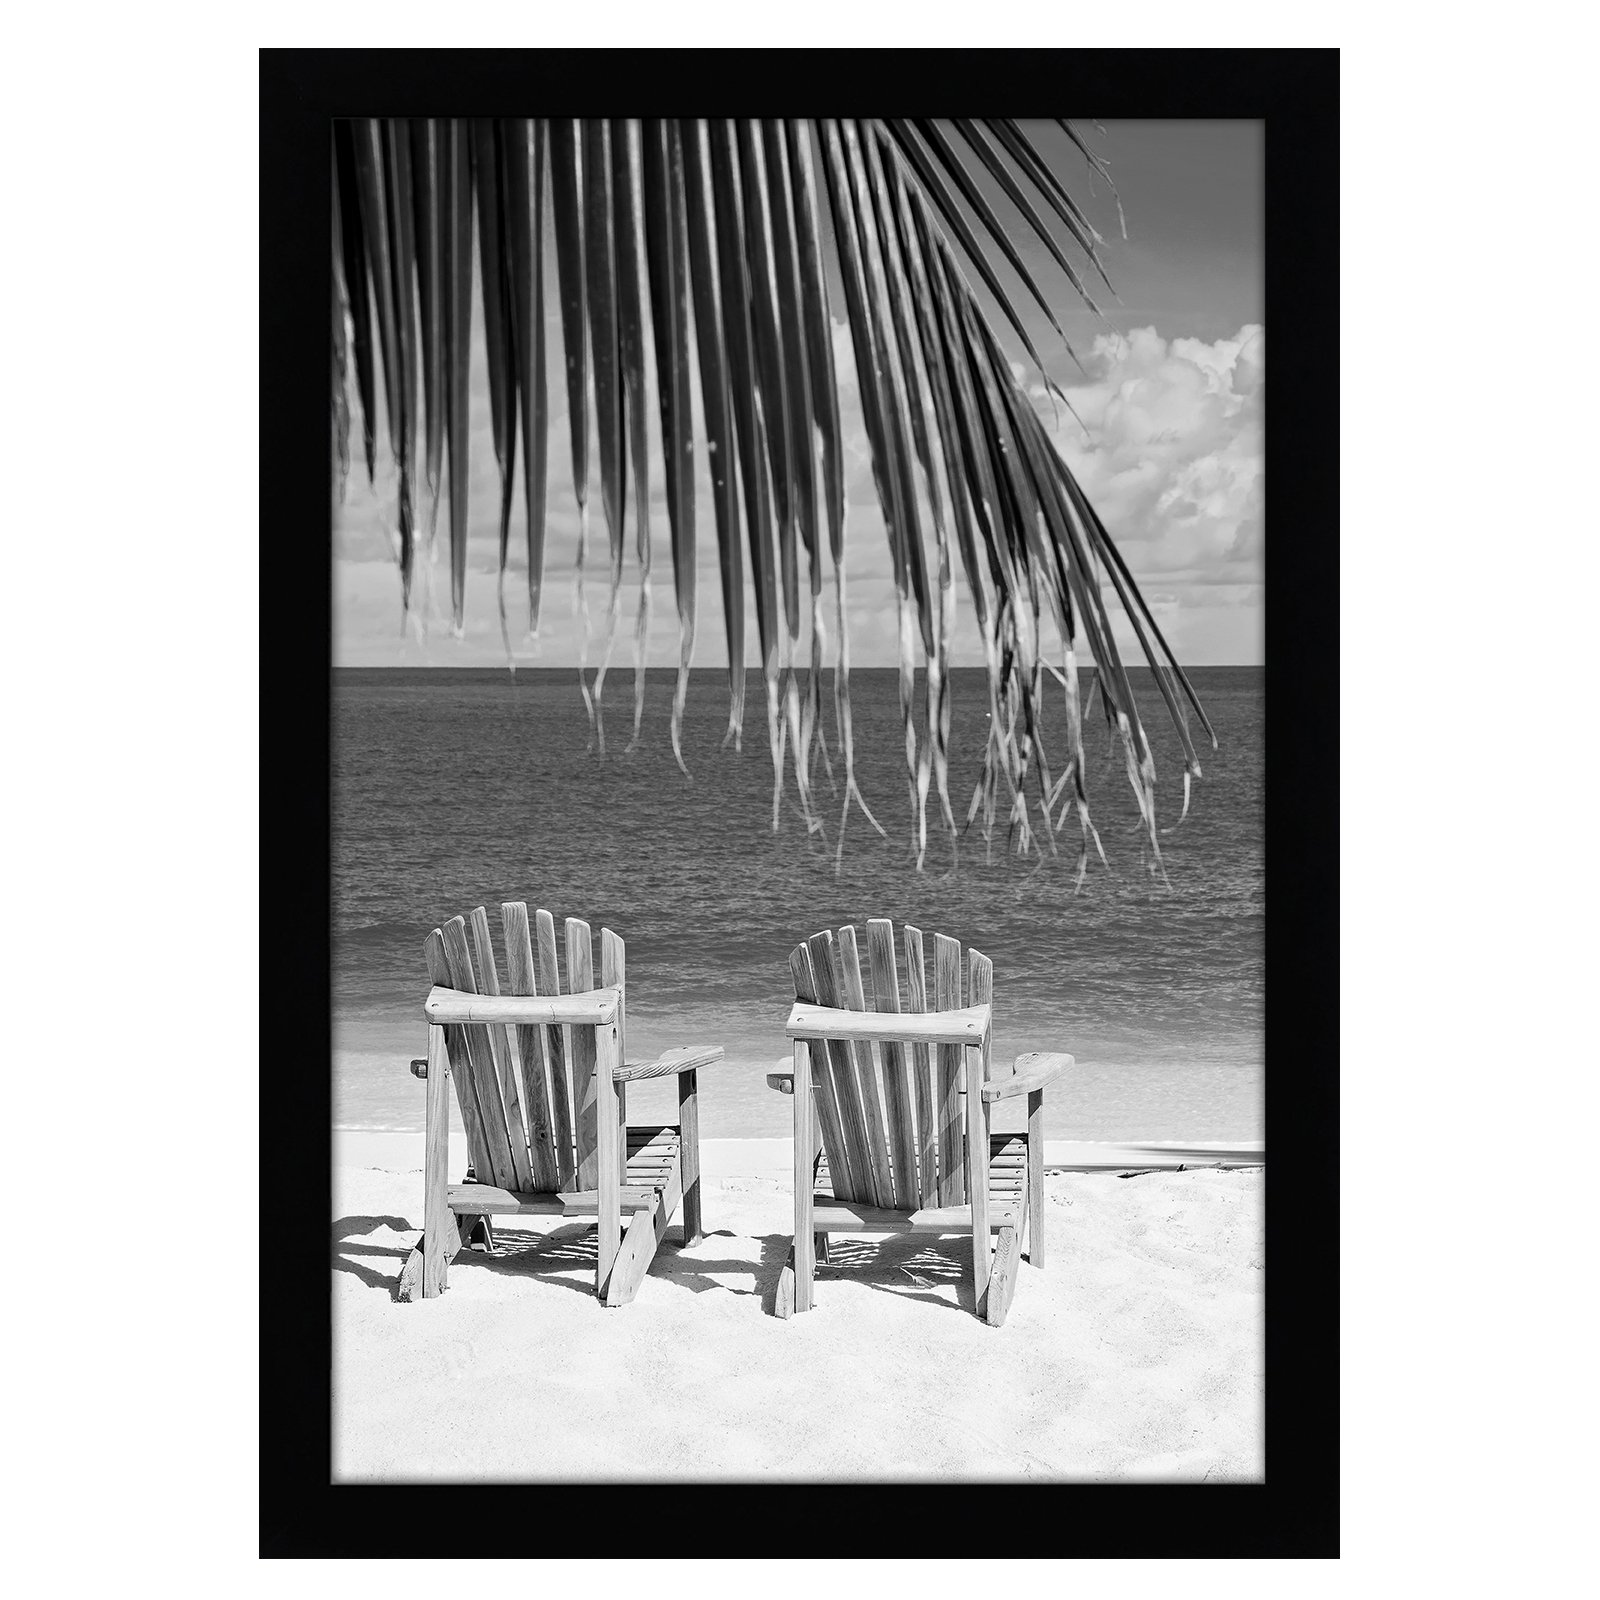 Americanflat 13x19 Black Picture Frame - Shatter-Resistant Glass - Hanging Hardware Included by Americanflat